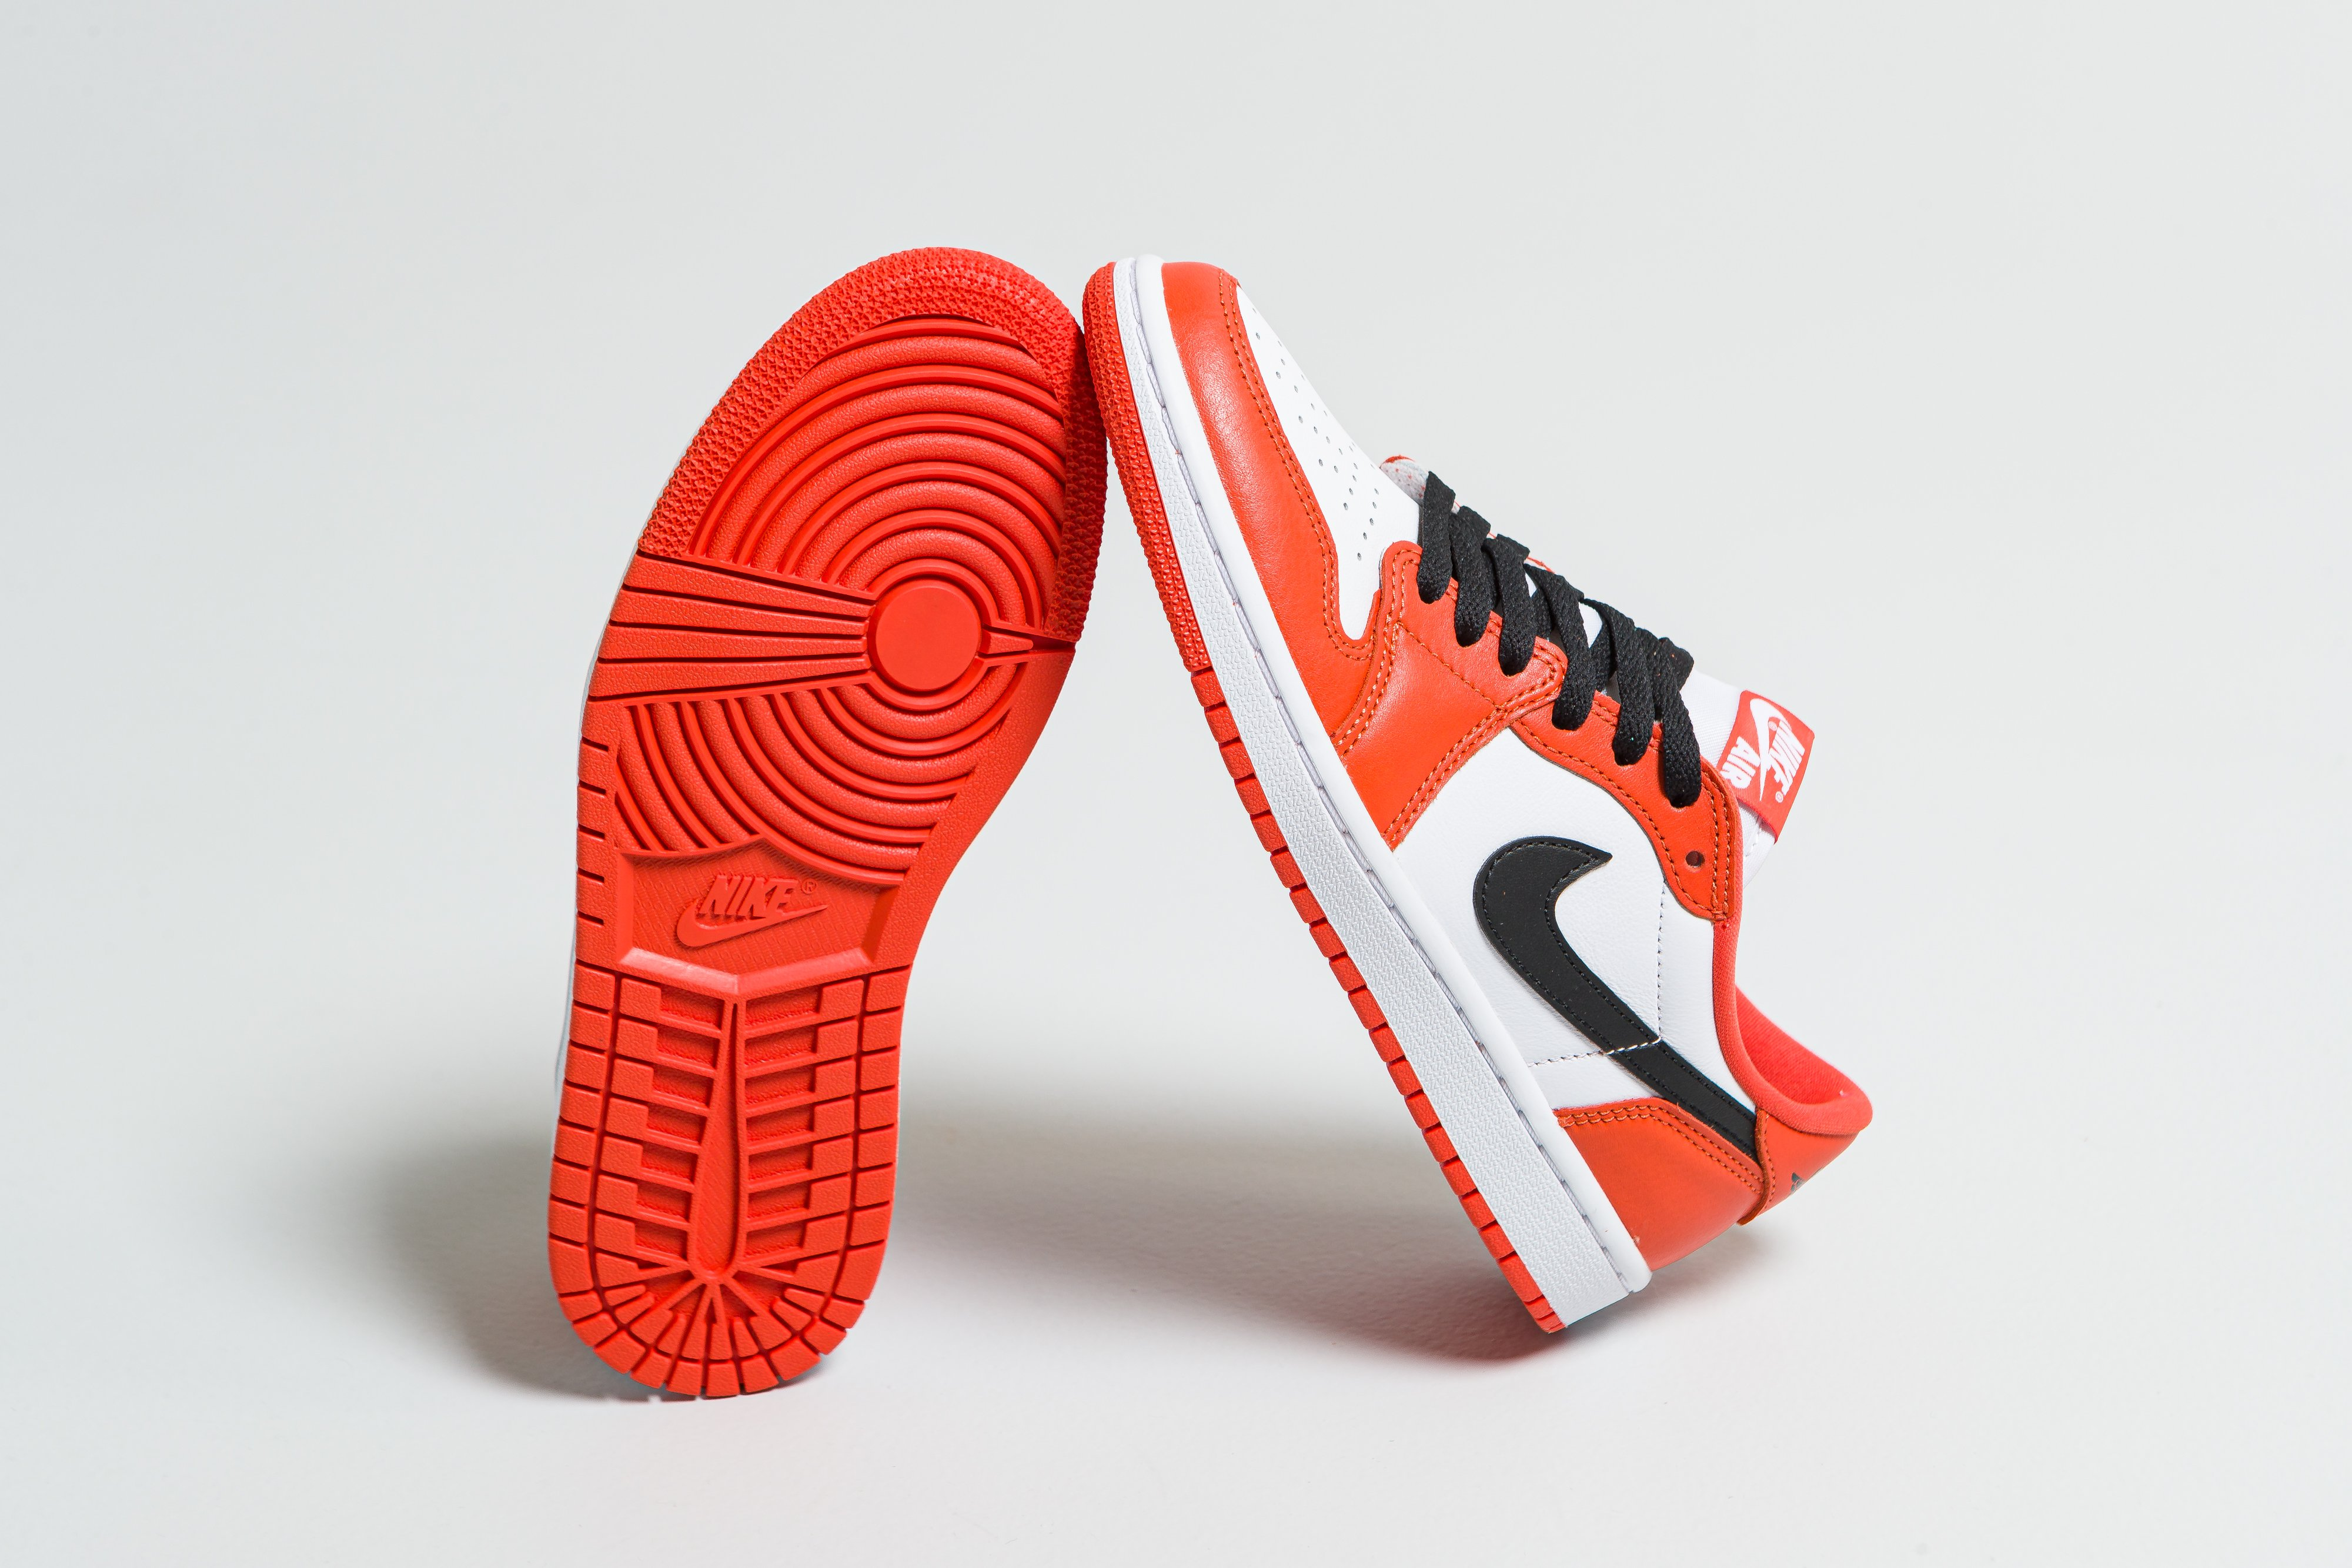 Up There Launches - Nike Women's Air Jordan 1 Low 'Starfish'